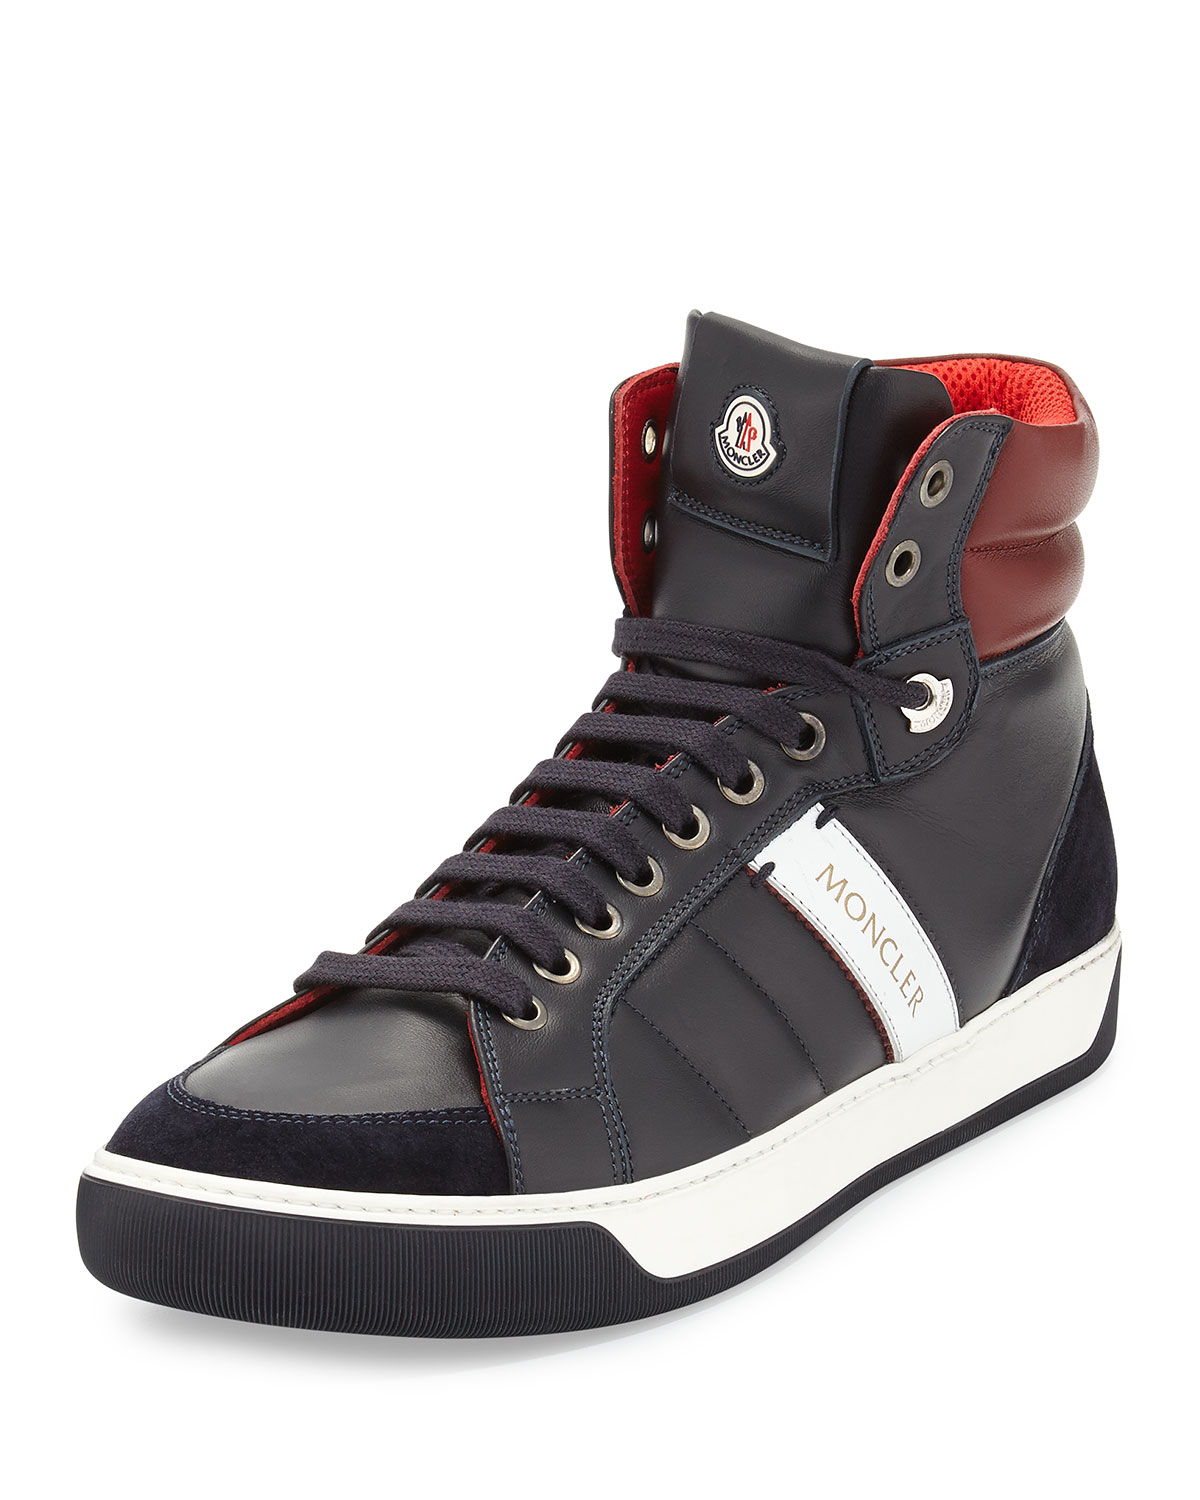 moncler high tops | West of Rayleigh